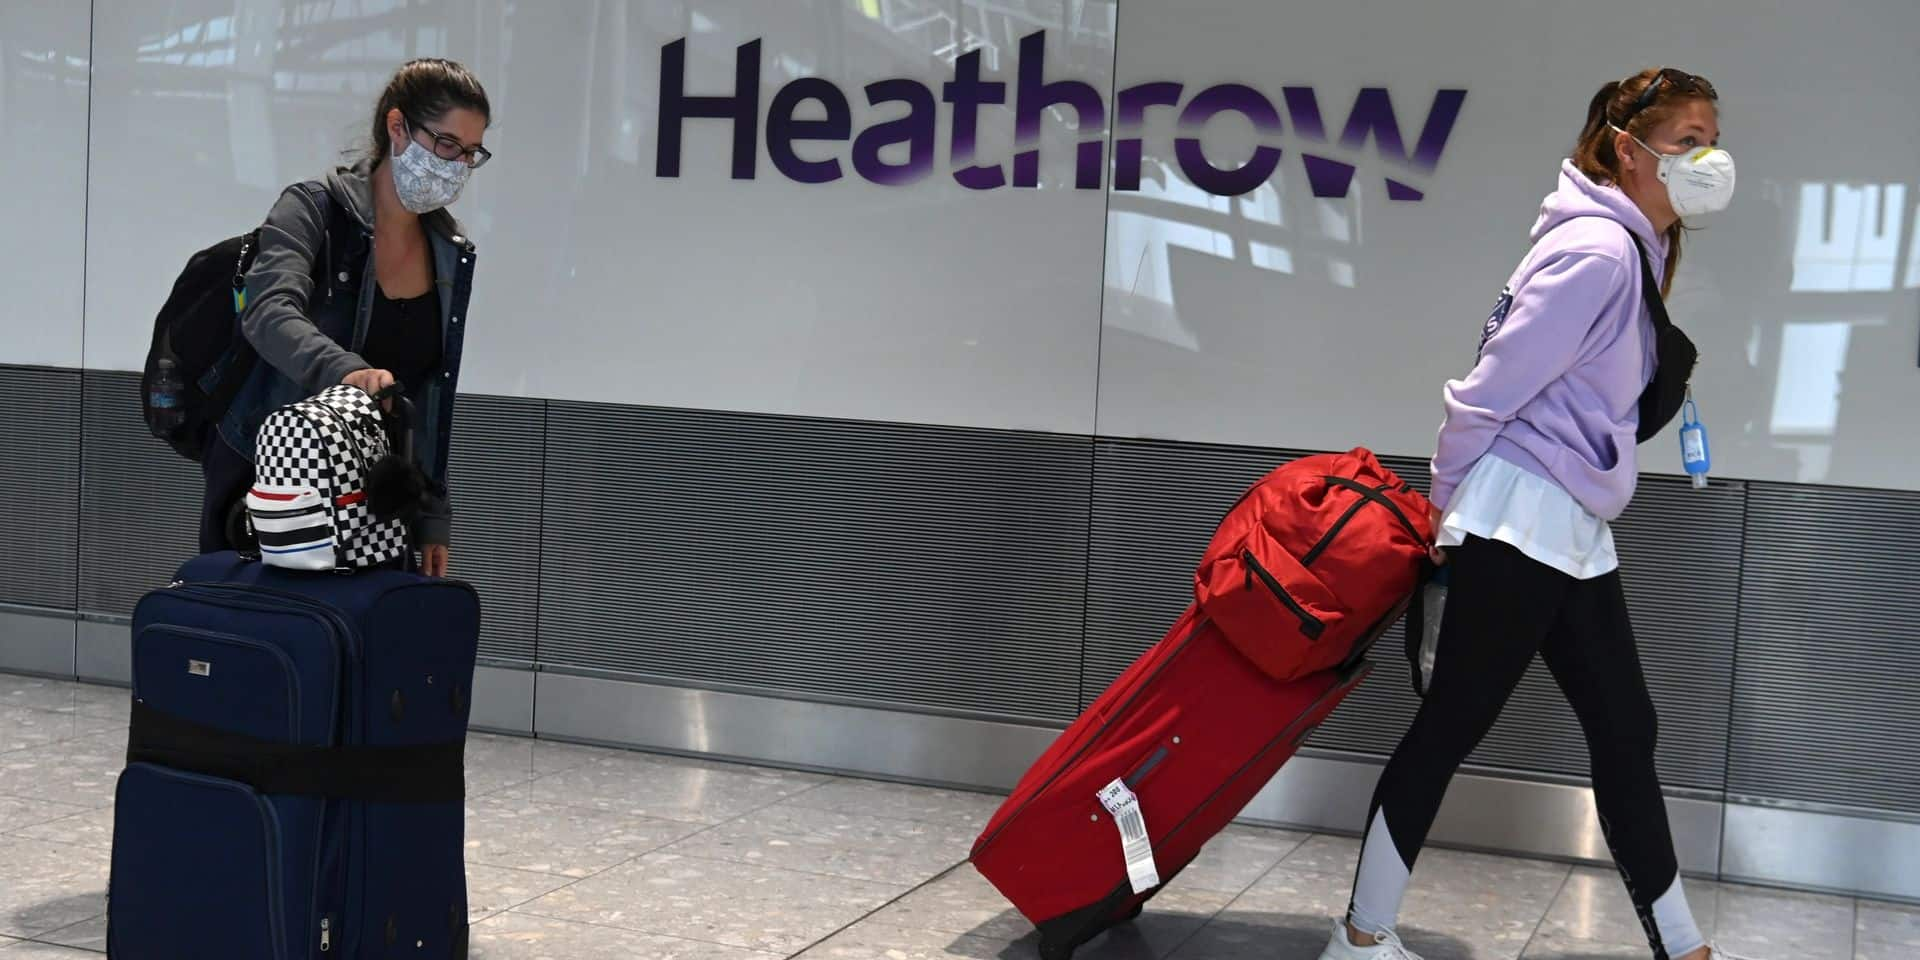 L'aéroport d'Heathrow perd sa place de numéro un en Europe au profit de Roissy-CDG